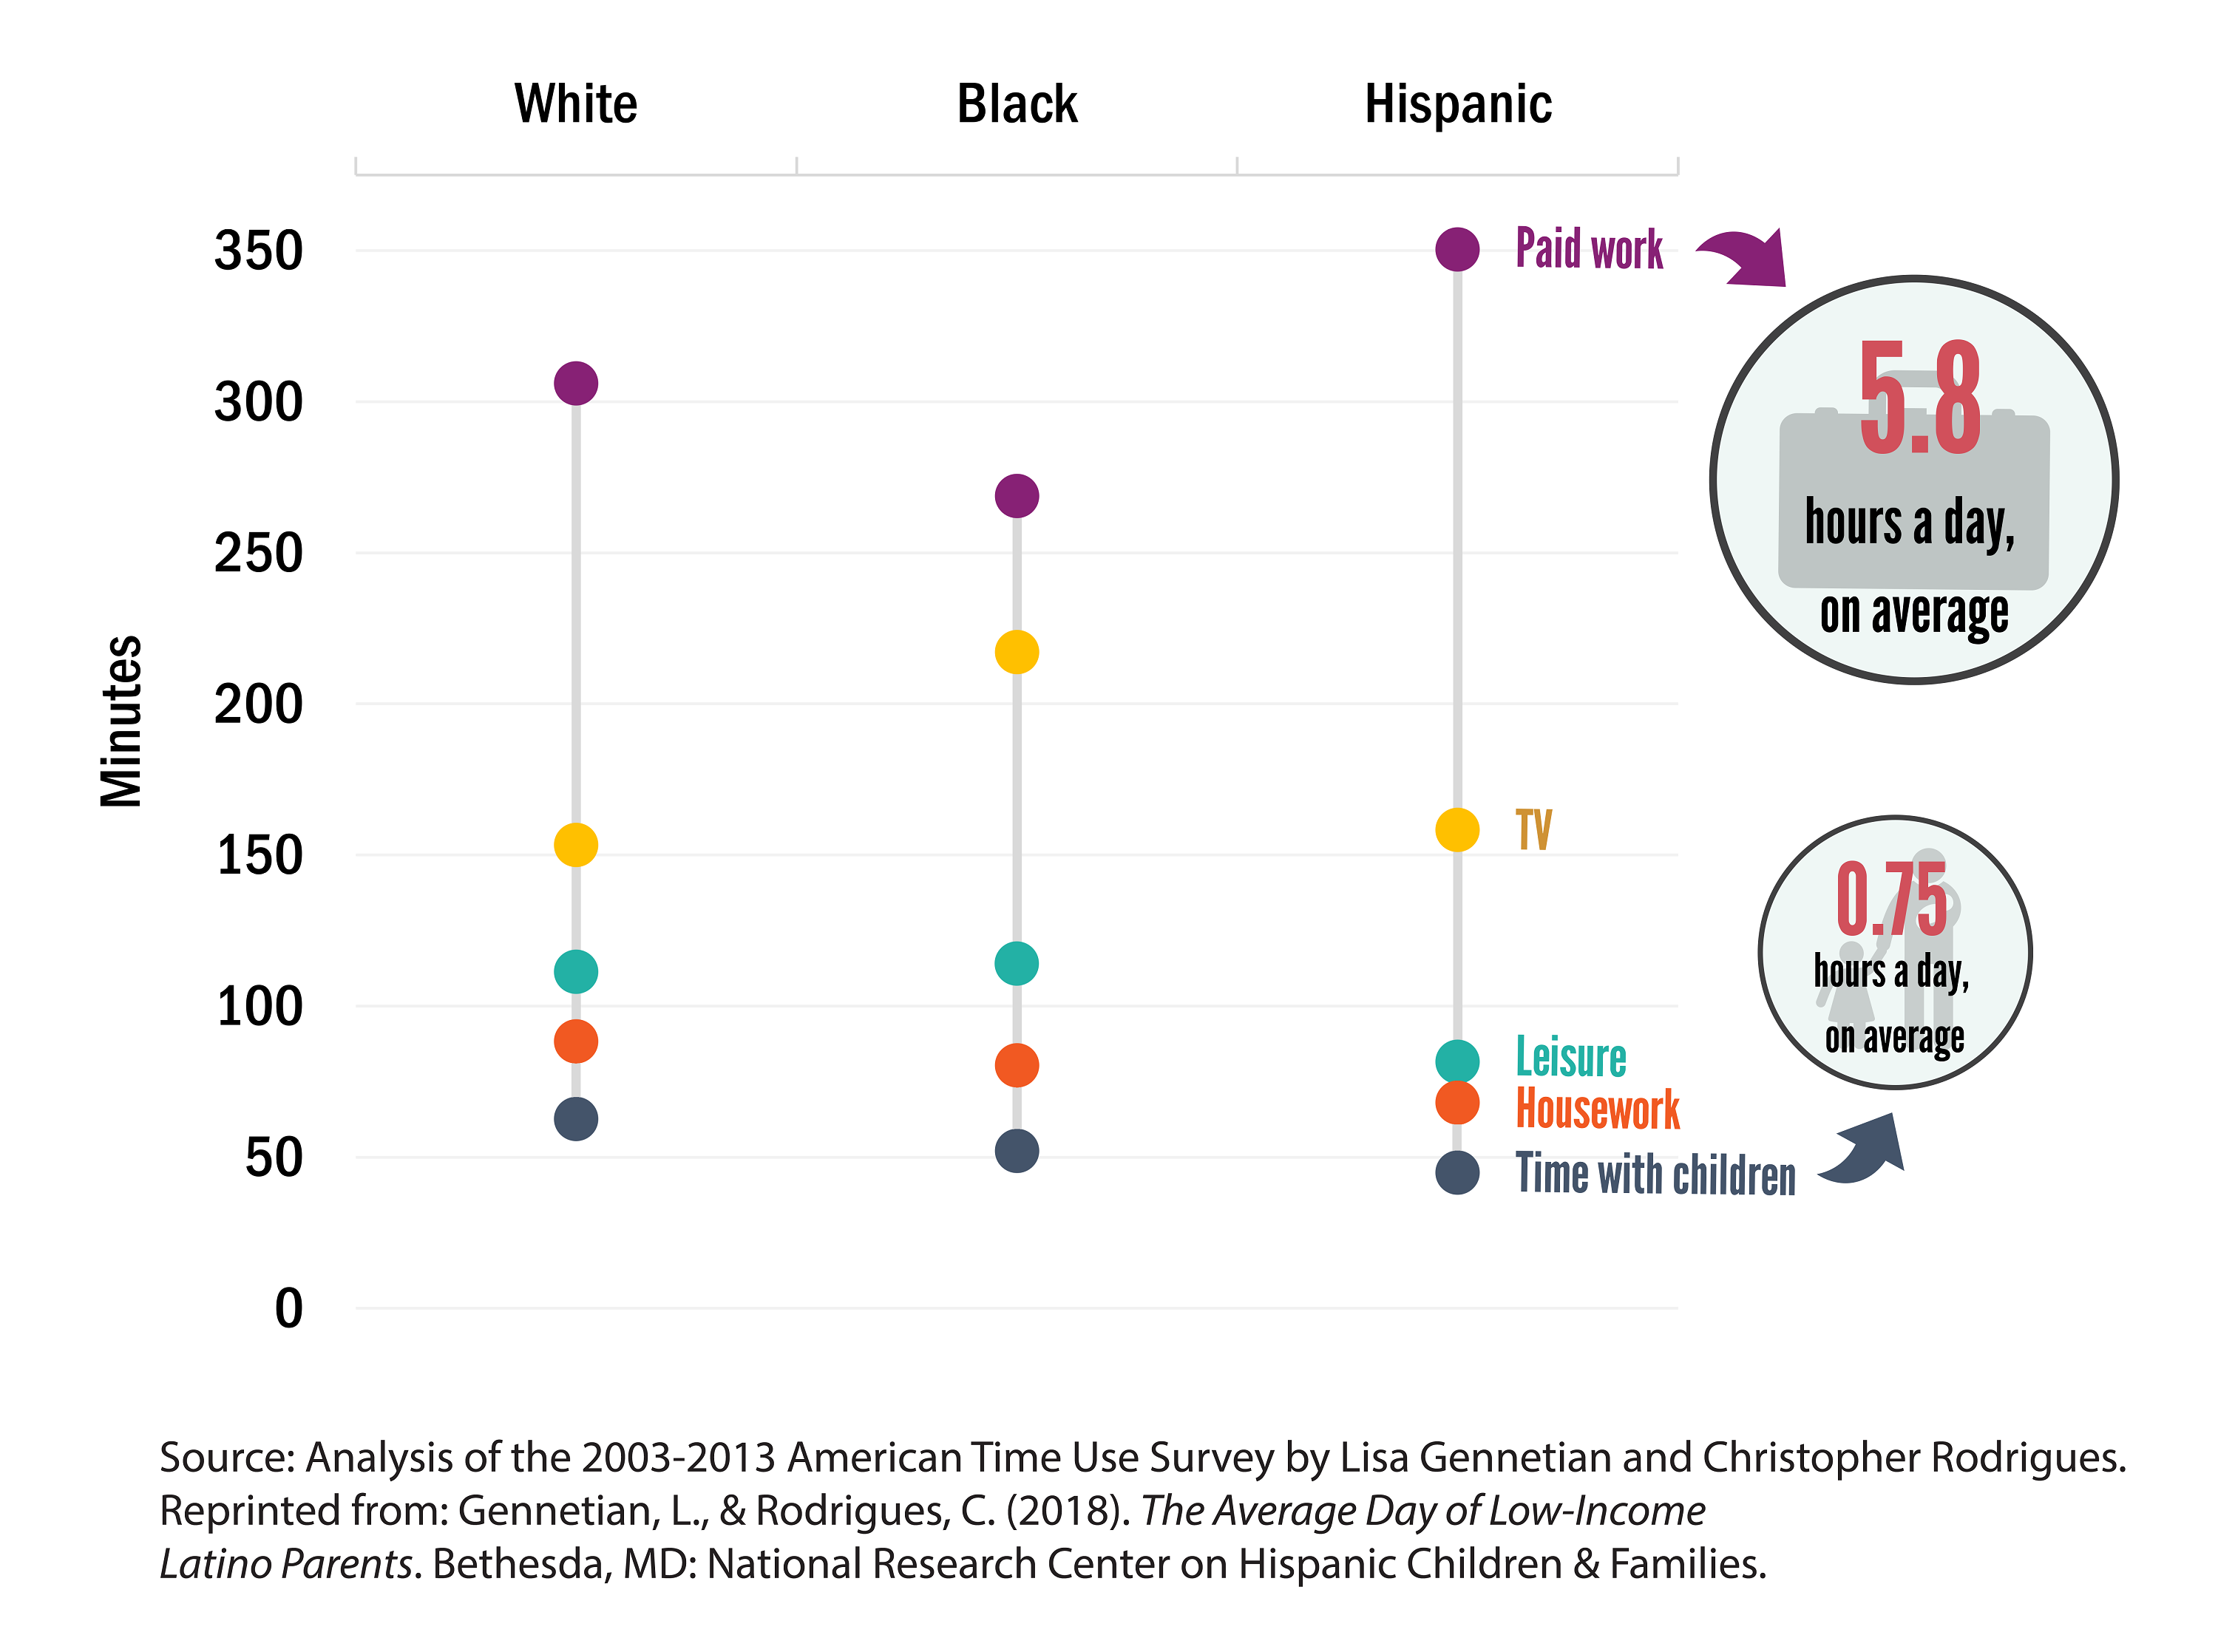 Low-income Hispanic fathers spent substantially more time on paid work and less time on housework or leisure than low-income white or black fathers